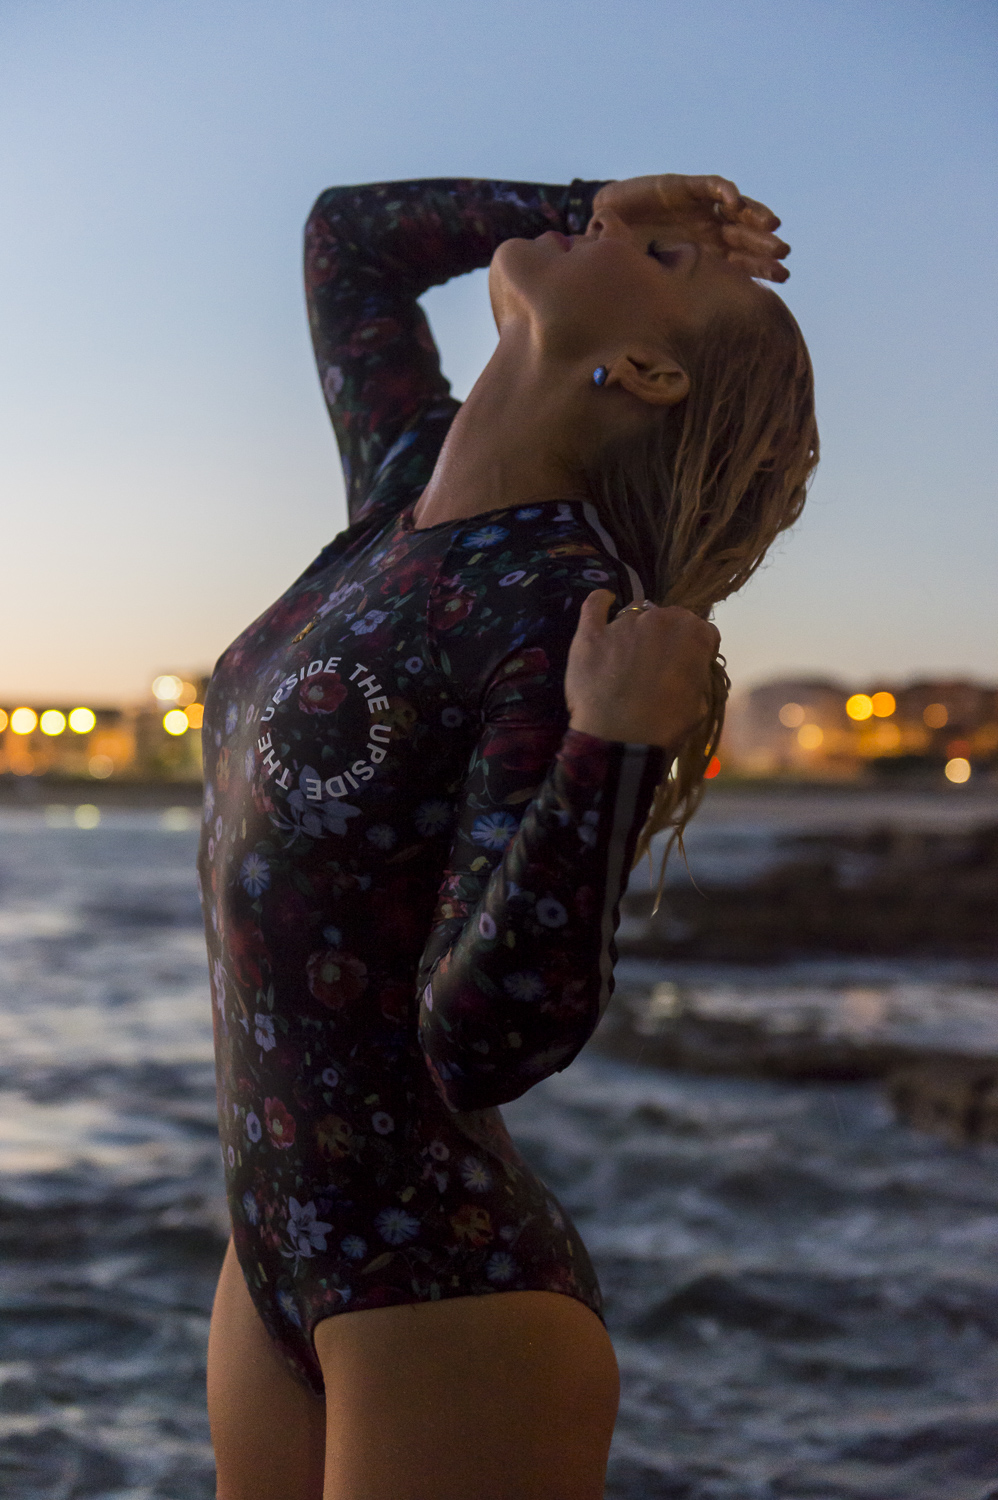 Anna Kooiman, North Bondi, AUSTRALIA, PHOTO: Lyndon Marceau